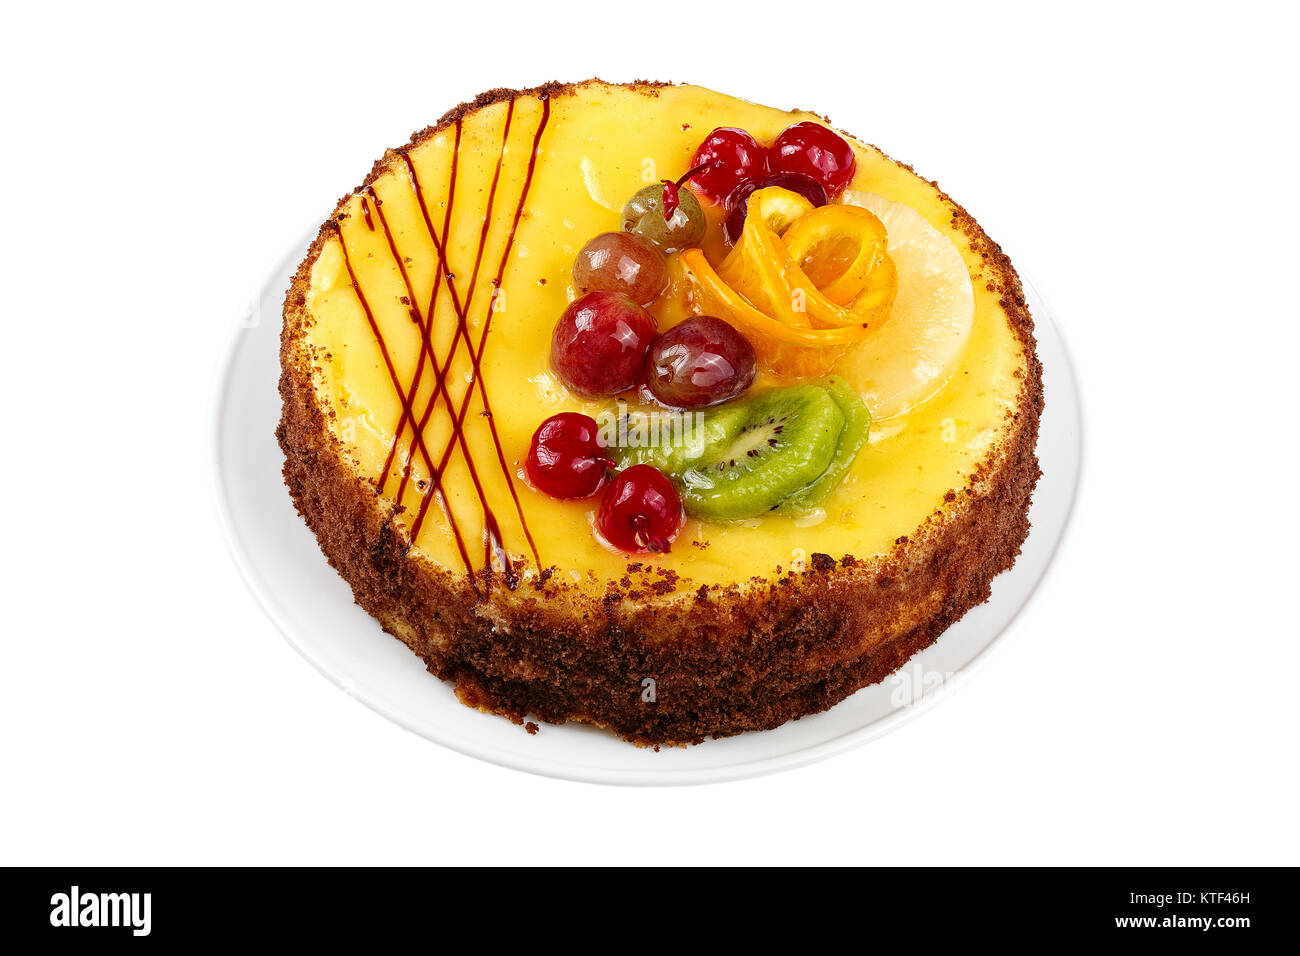 delicious birthday cake, cream cake with cherries, oranges and chocolate, space for text on wite background - Stock Image